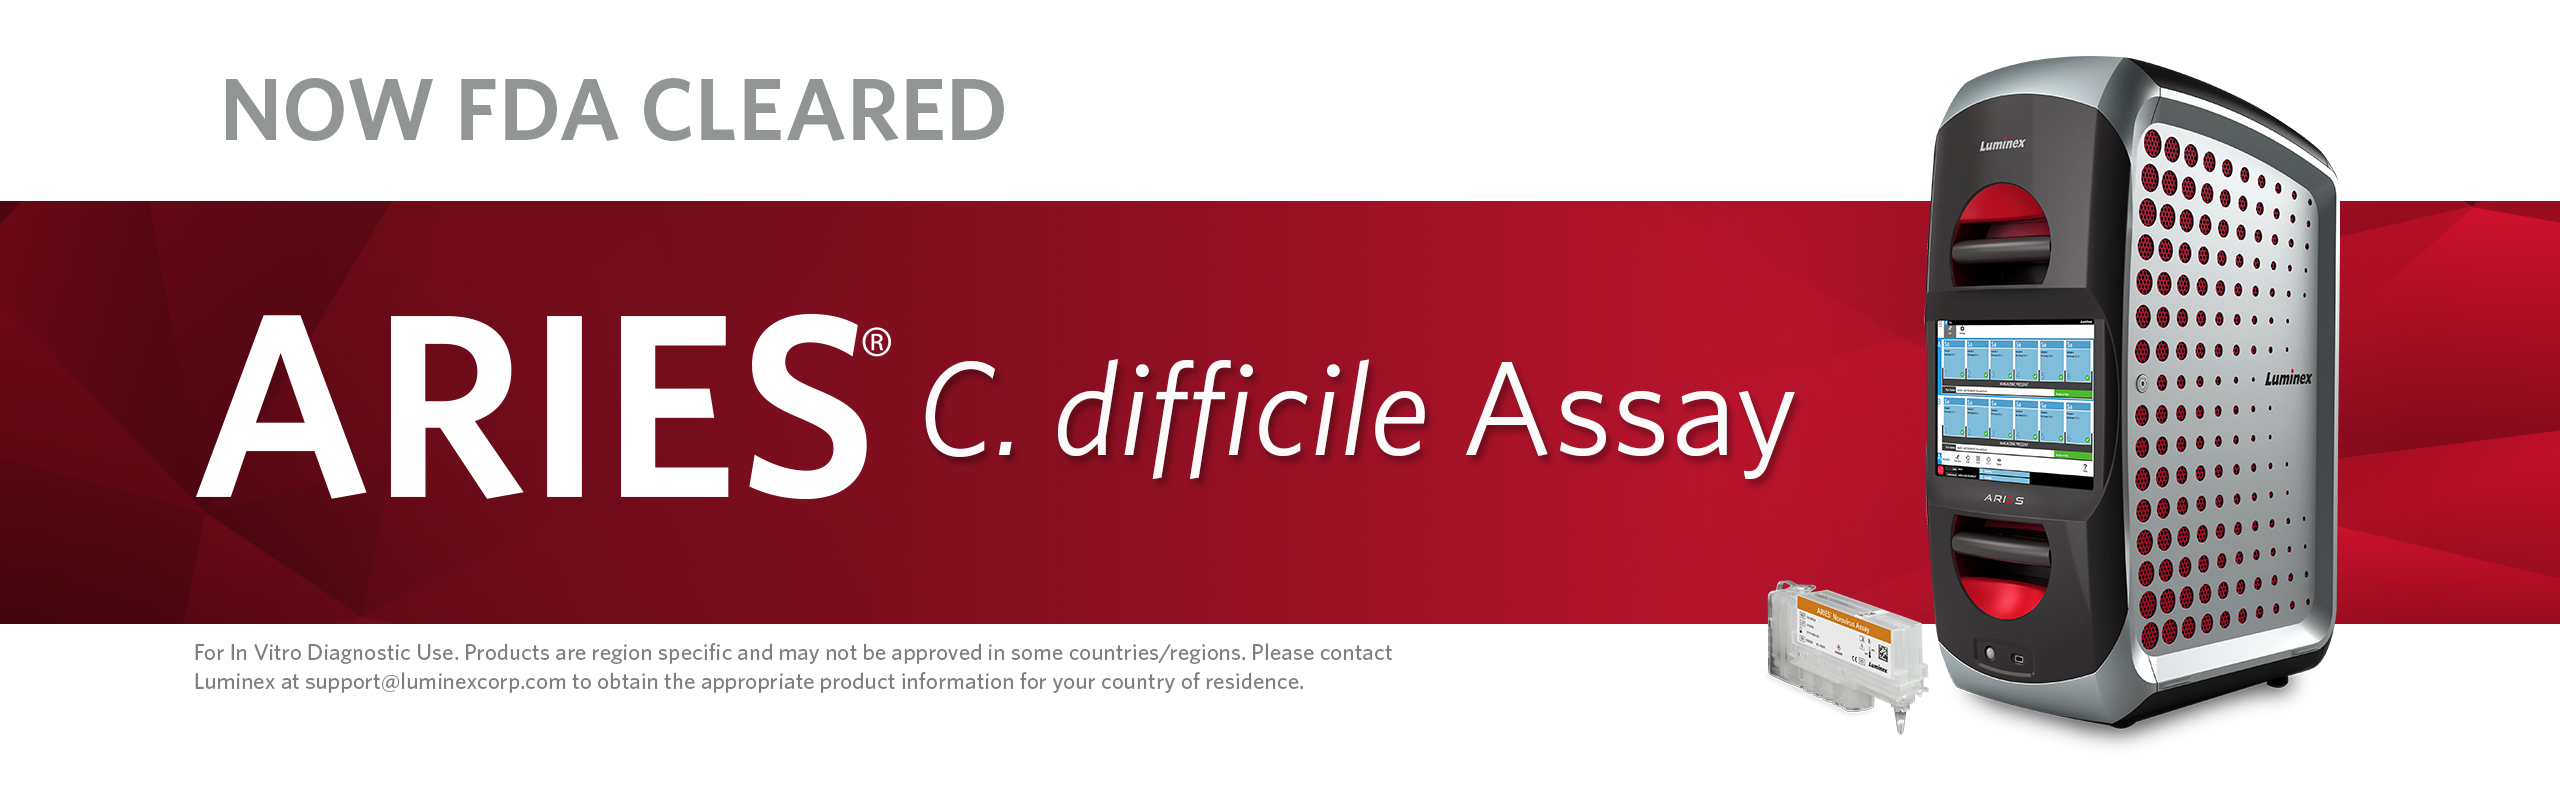 ARIES® C. difficile Assay | FDA Cleared for IVD Use